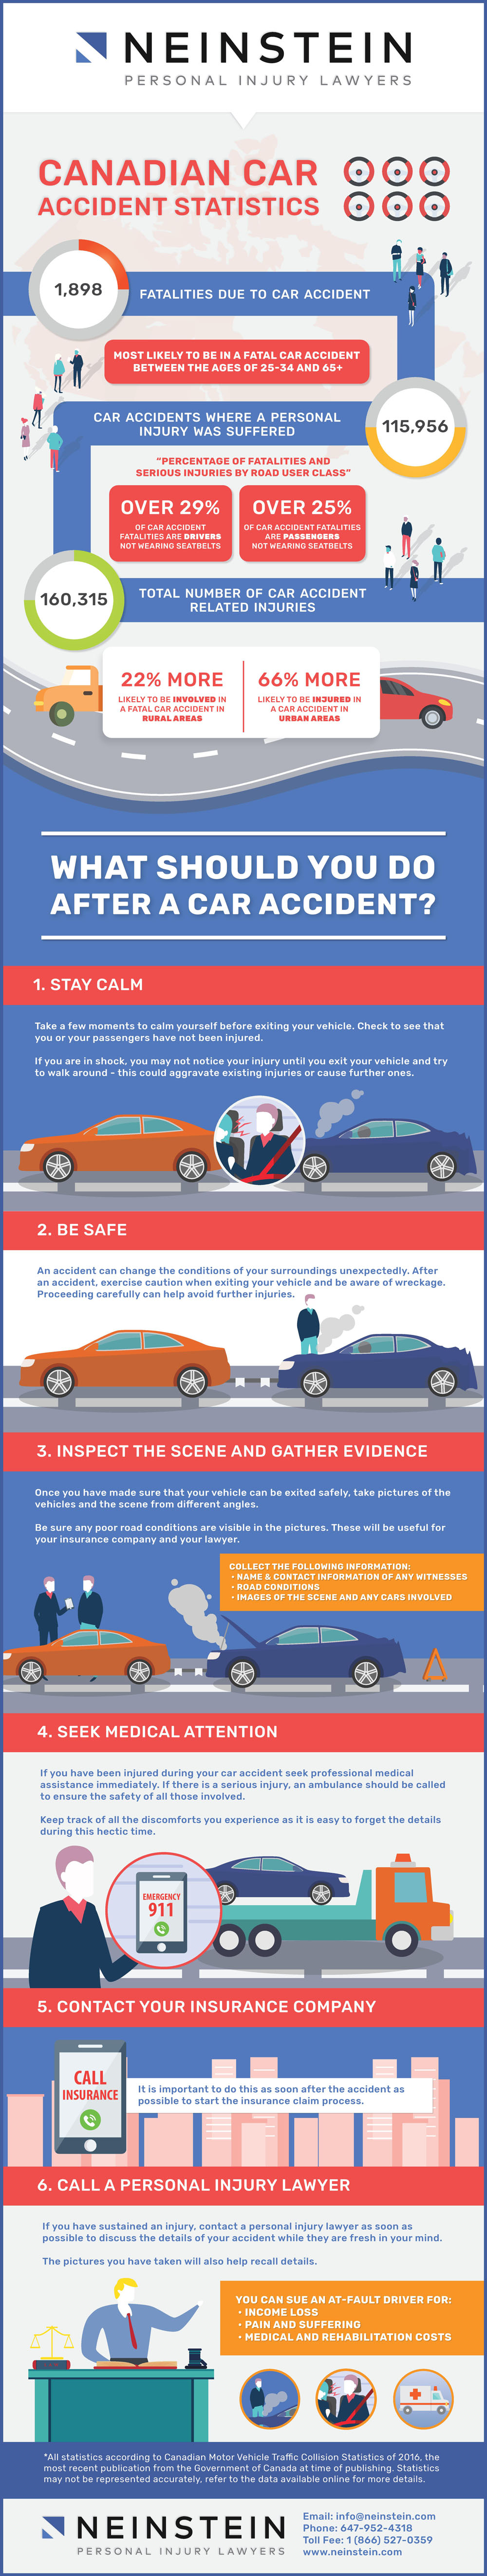 Do You Know What To Do After a Car Accident?